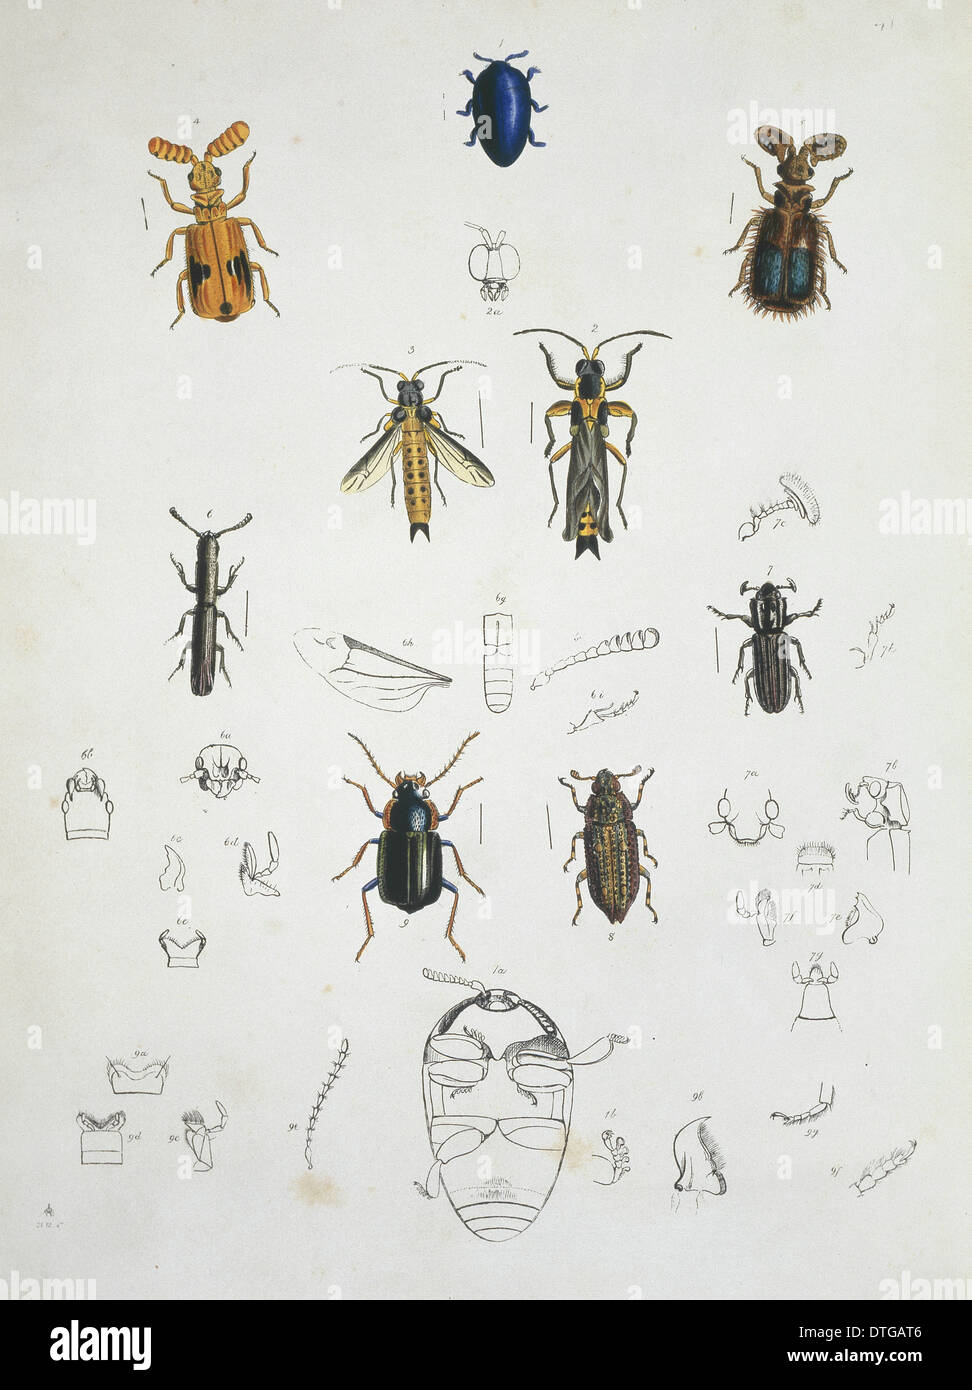 Illustration der Käfer Stockbild